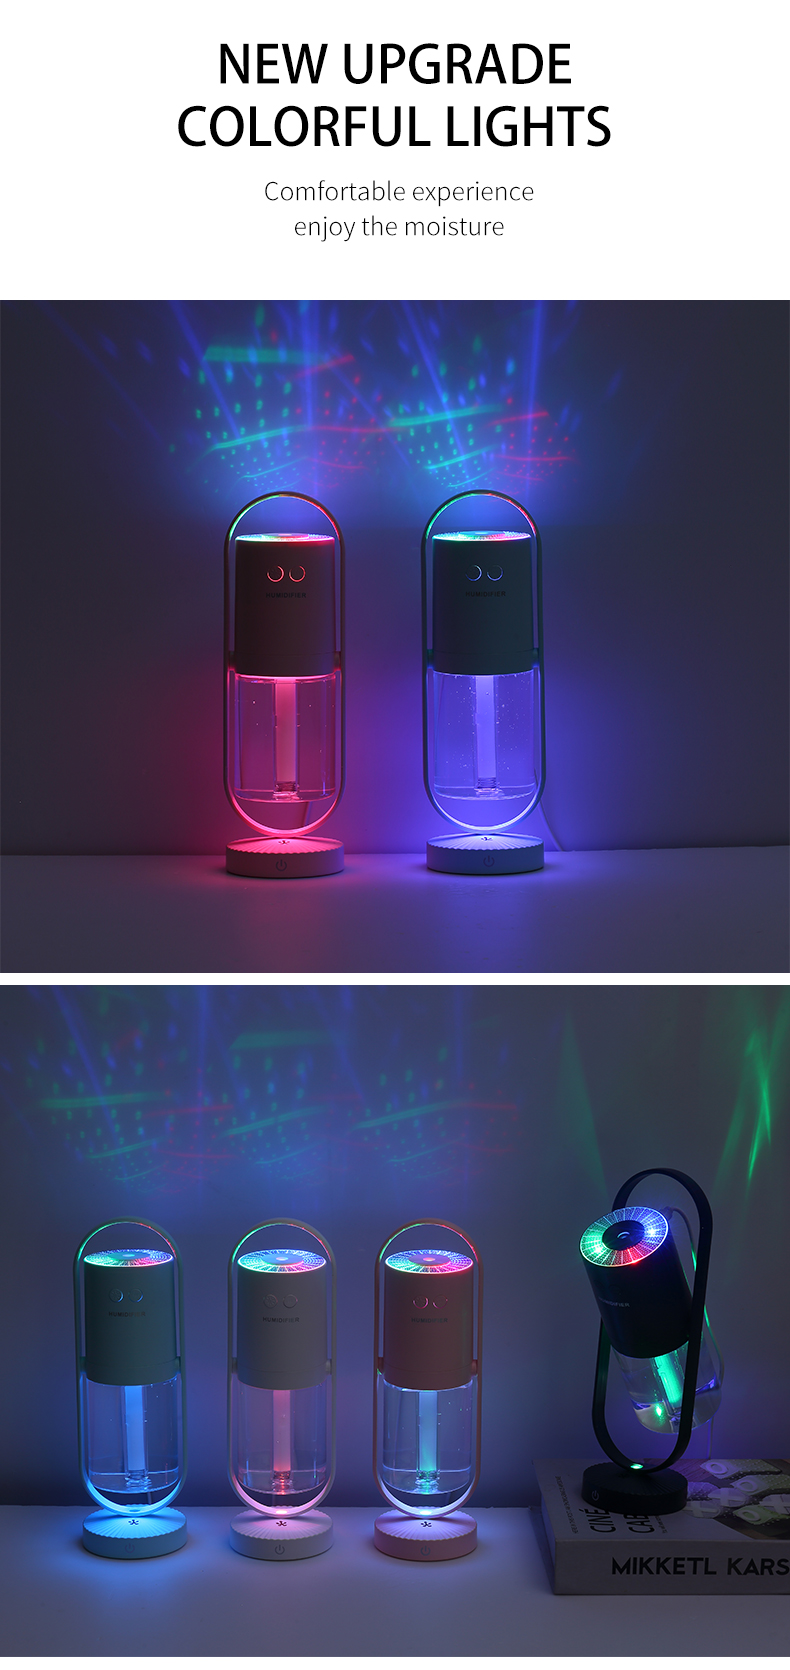 New Magic Negative Air Ion Humidifier 200ML Ultrasonic Essential Oil Diffuser Cool Mist Air Purifier 7 Color Lights Home Office